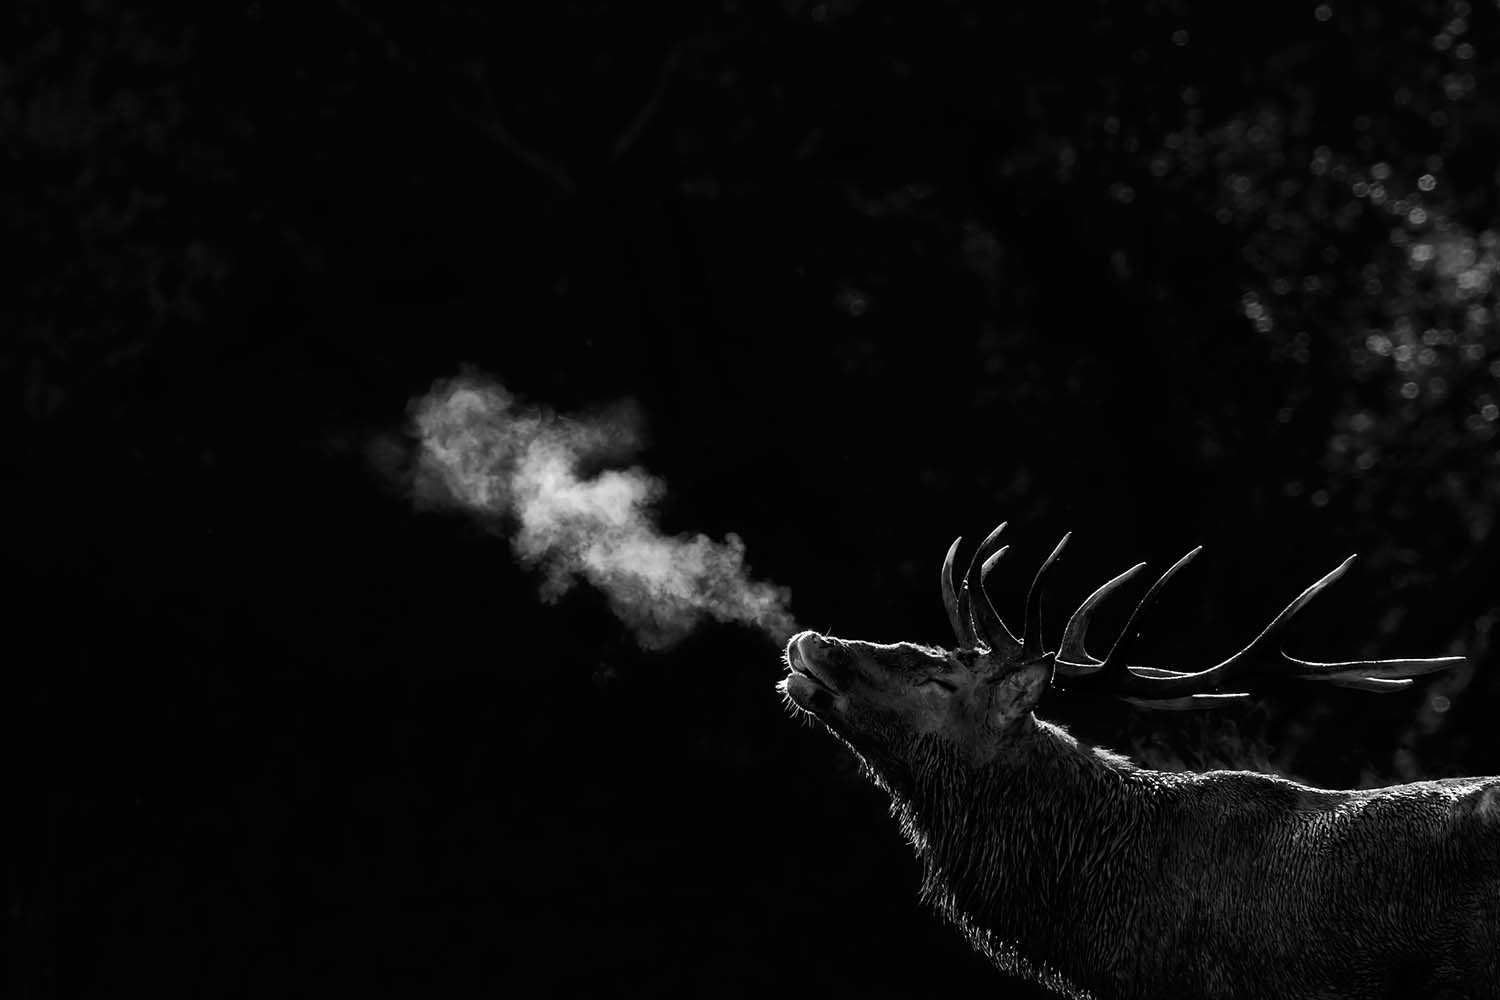 December Th Th Entries Of The Week Sony World - 12 amazing photos from the 2016 sony photography awards